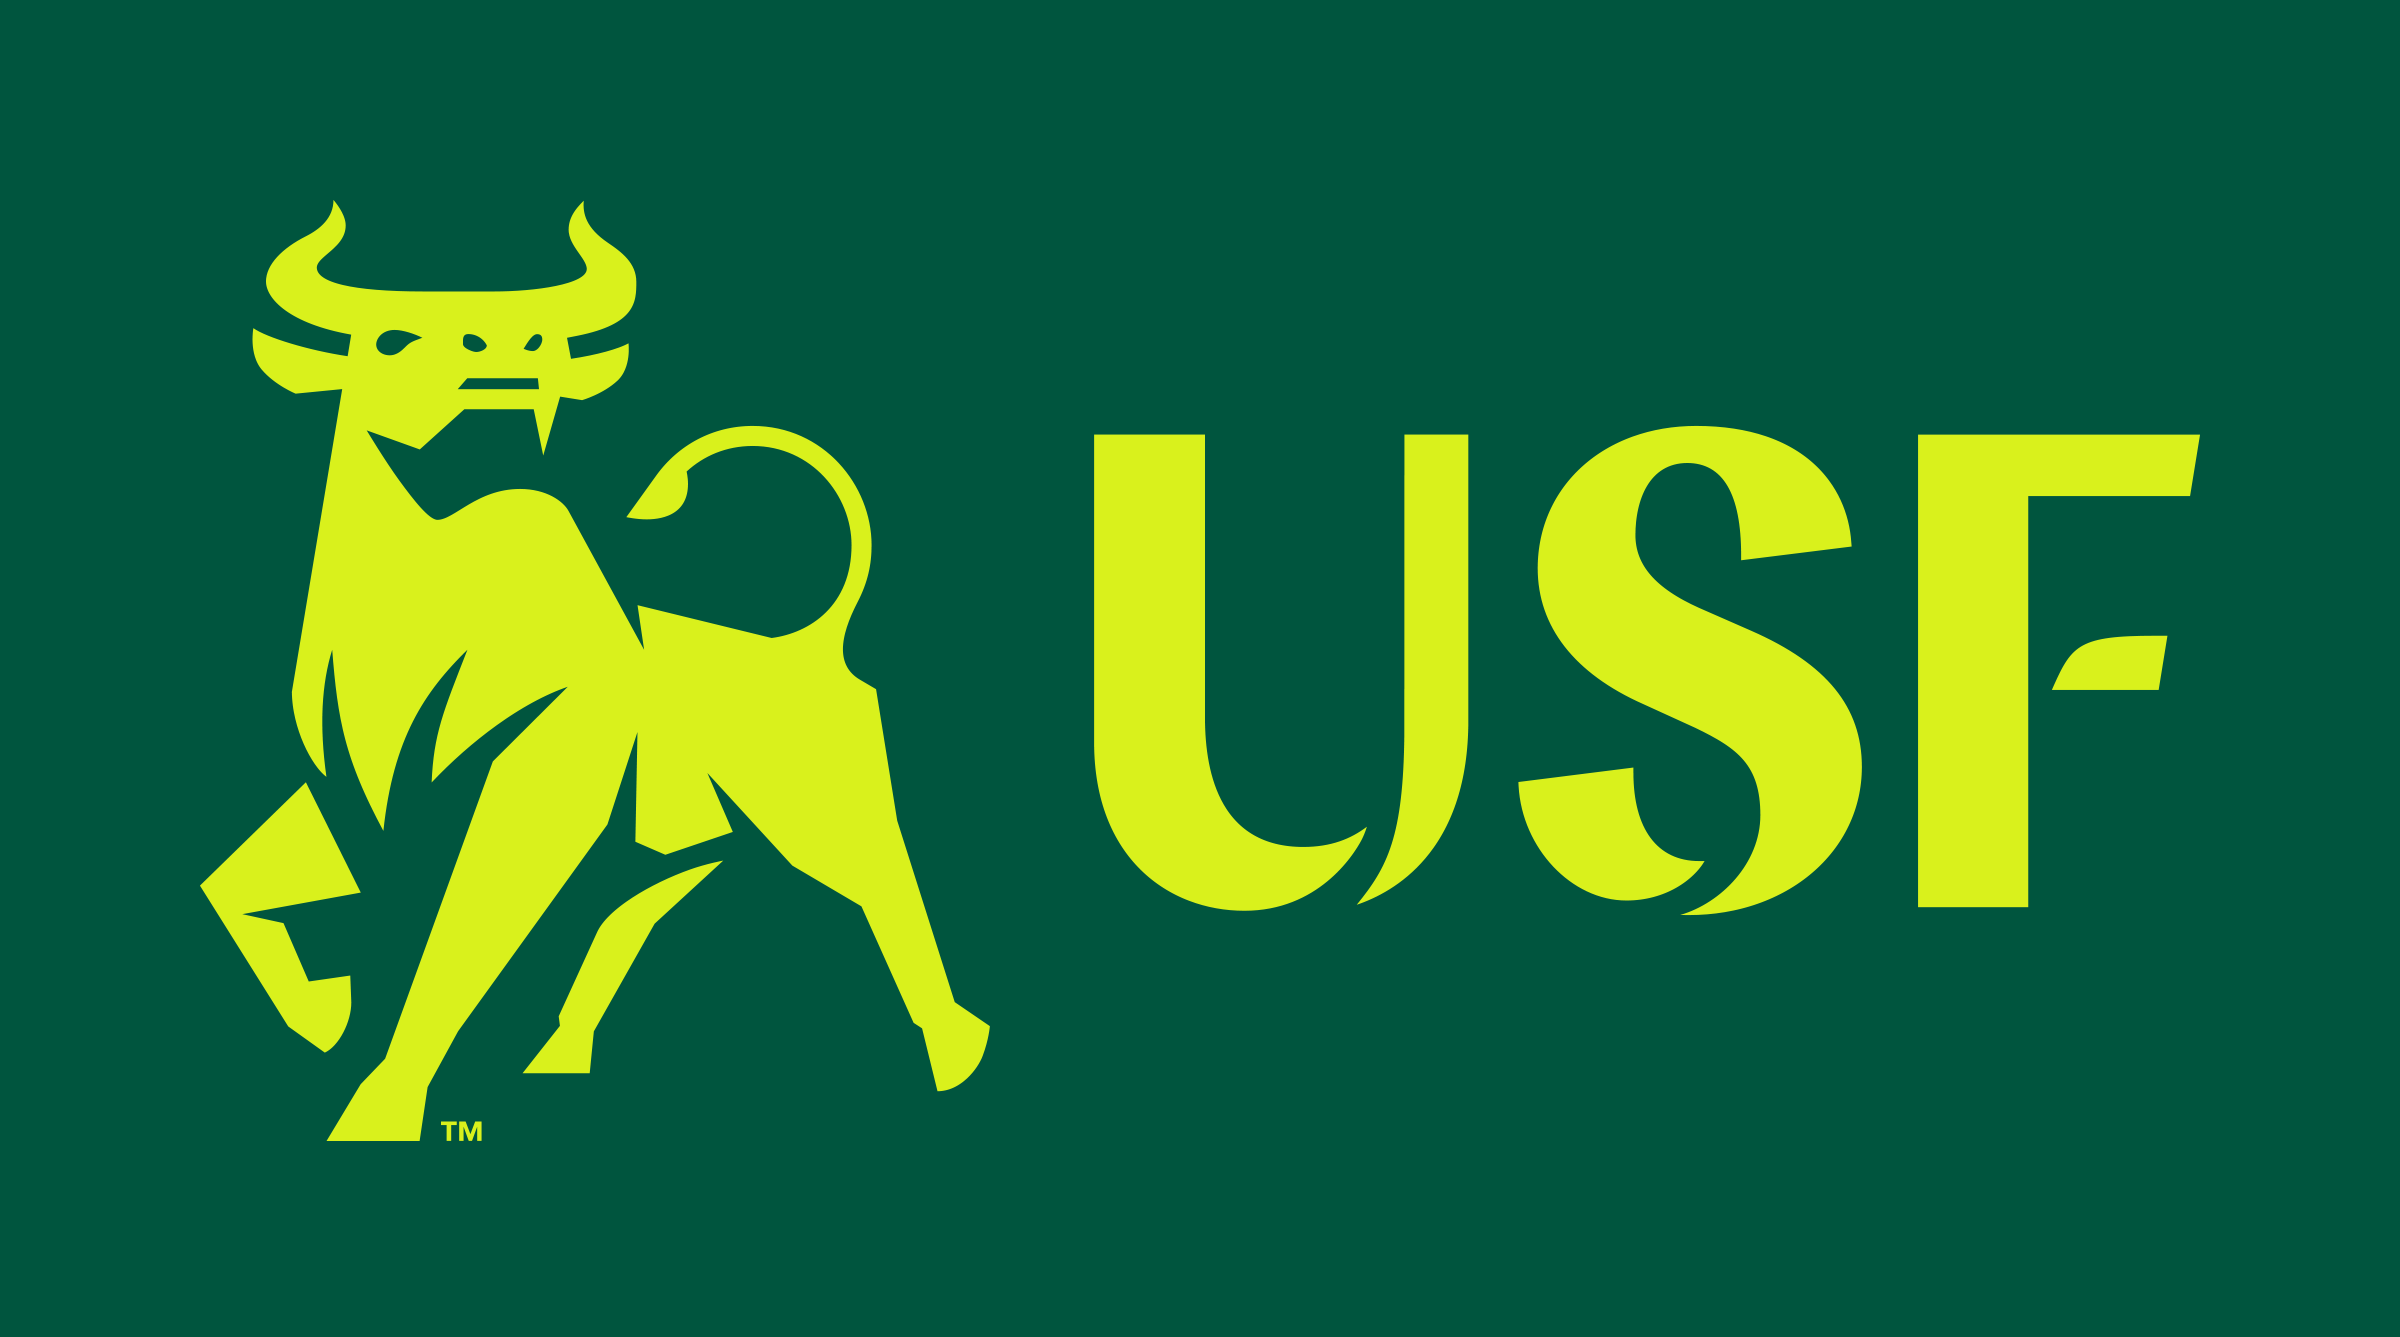 New Logo And Identity For University Of South Florida By Spark University Of South Florida Usf Bulls Usf